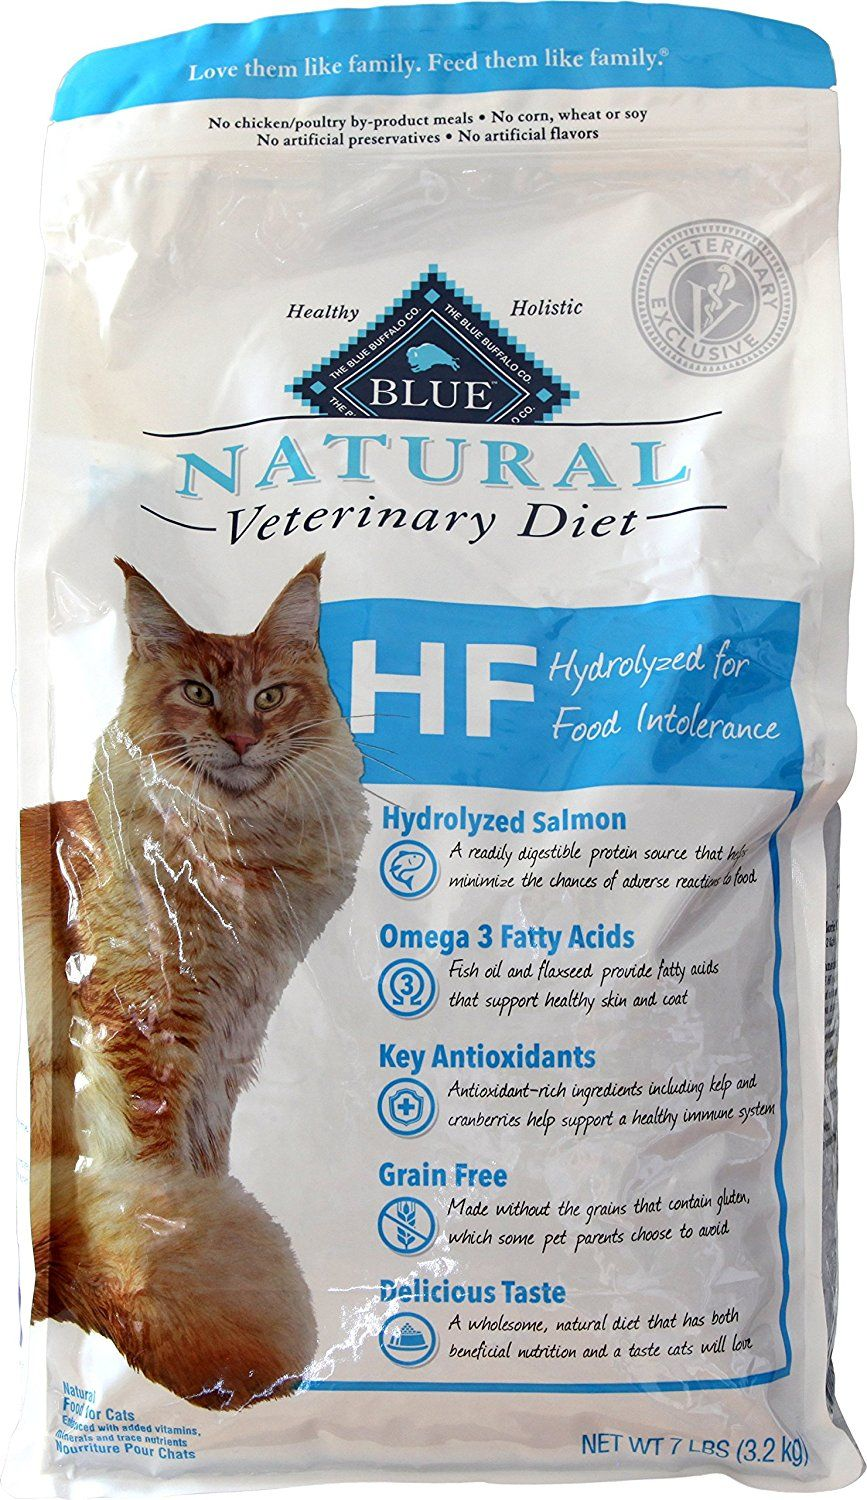 Blue Natural Veterinary Diet HF Hydrolyzed for Food